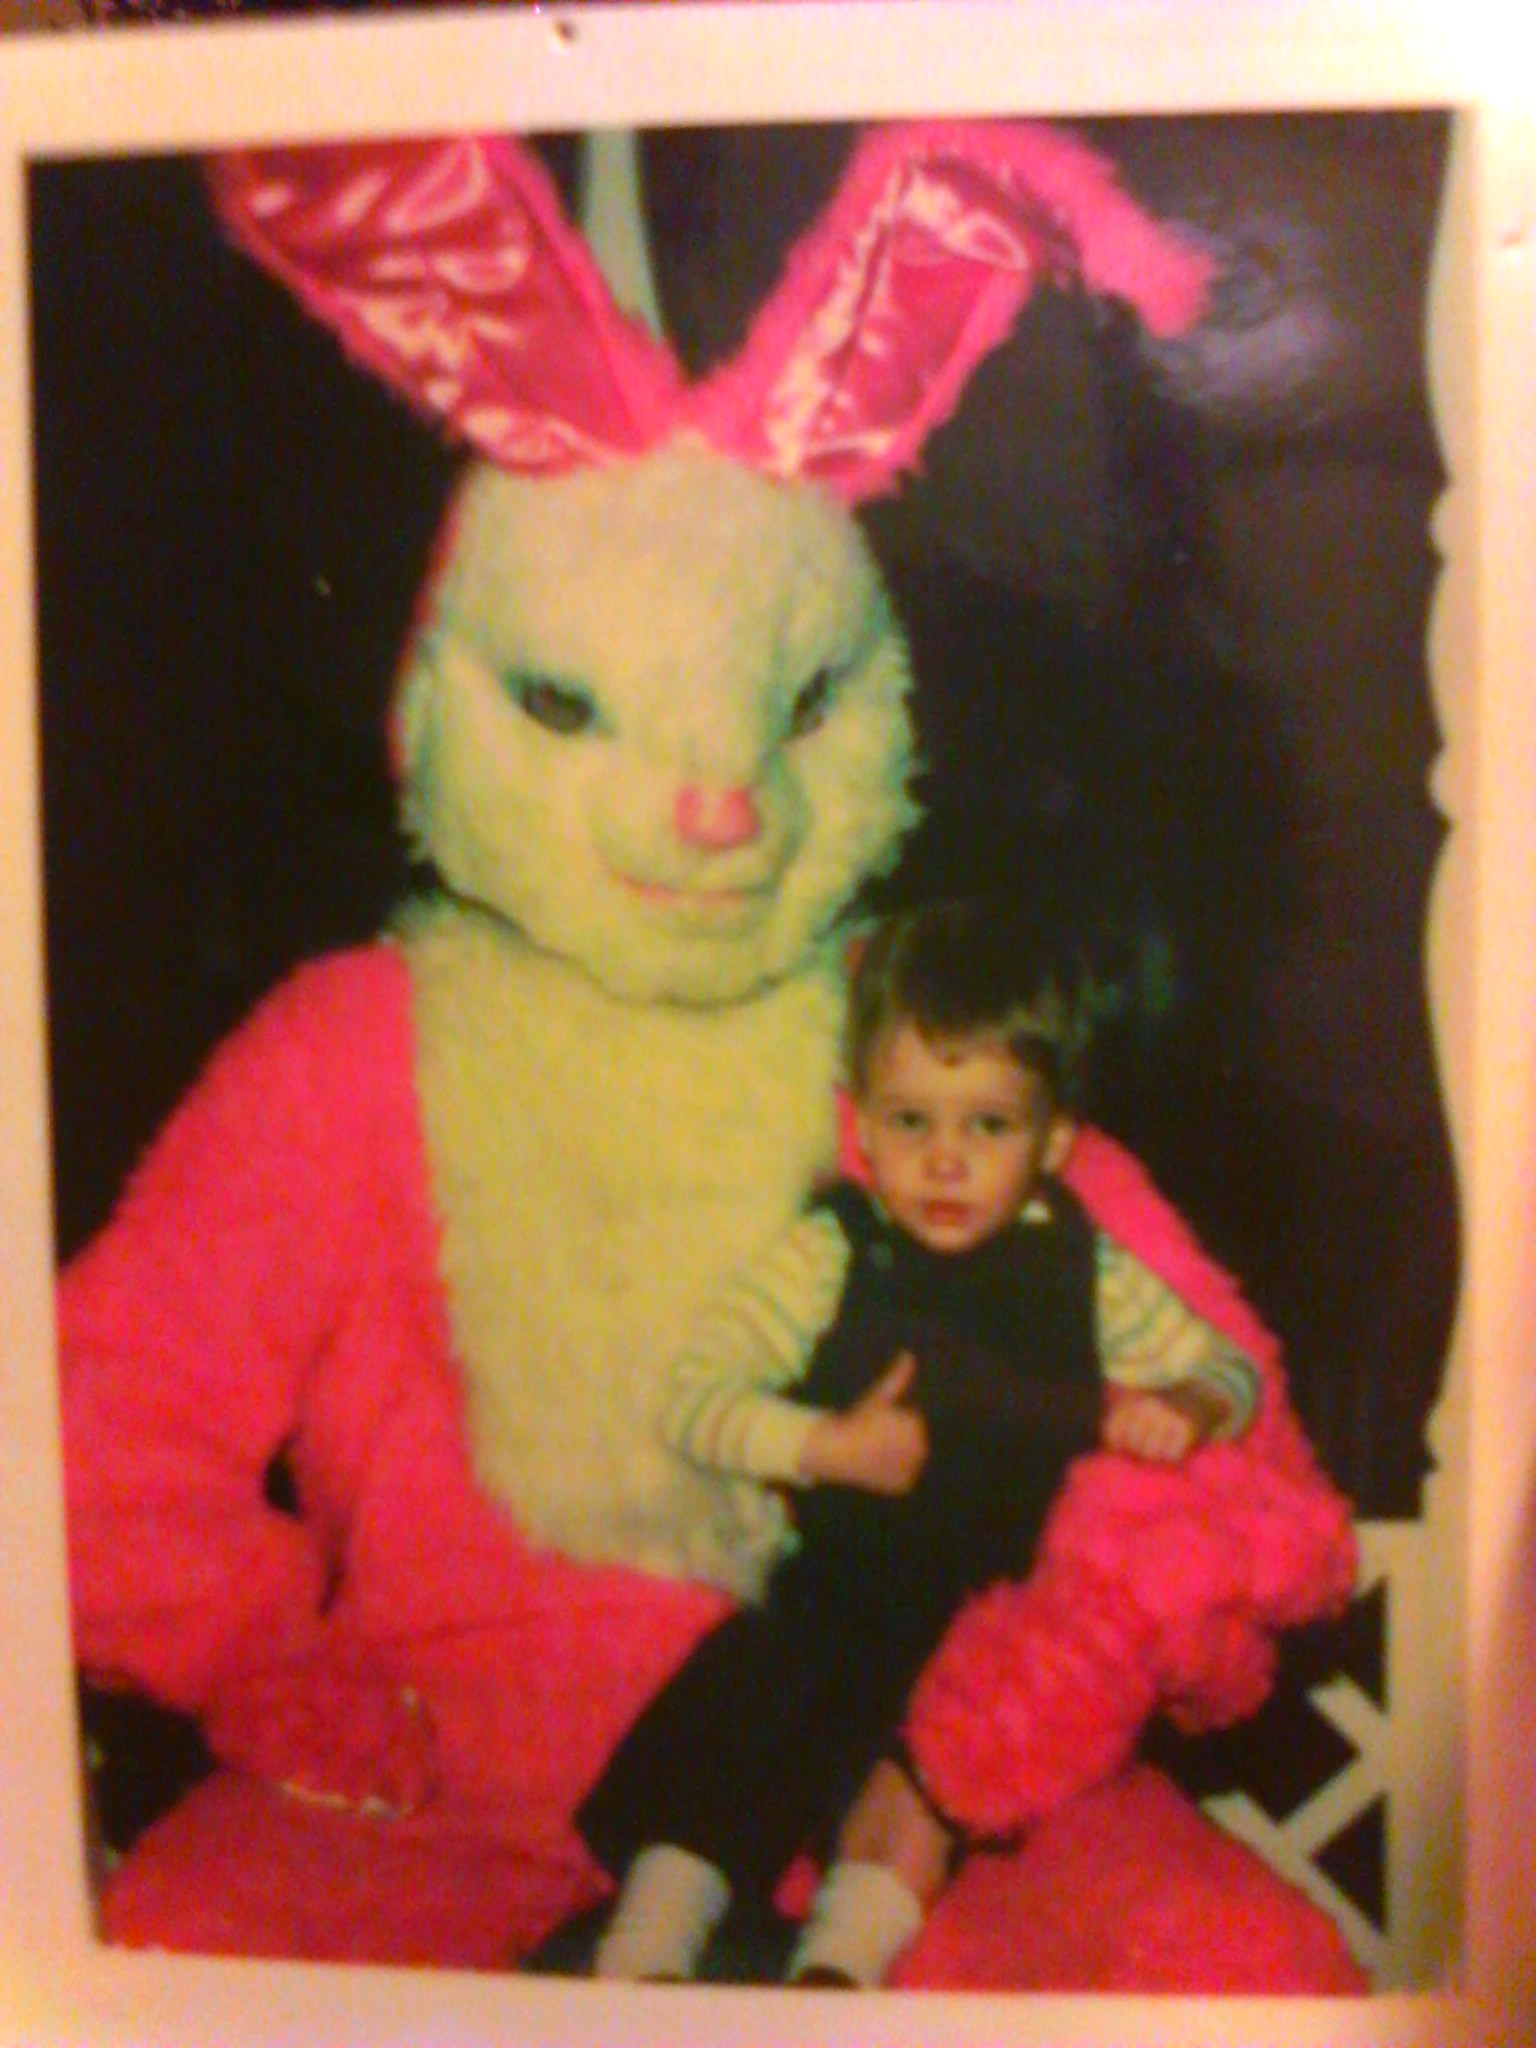 Why is the Easter Bunny eye-f*cking me?